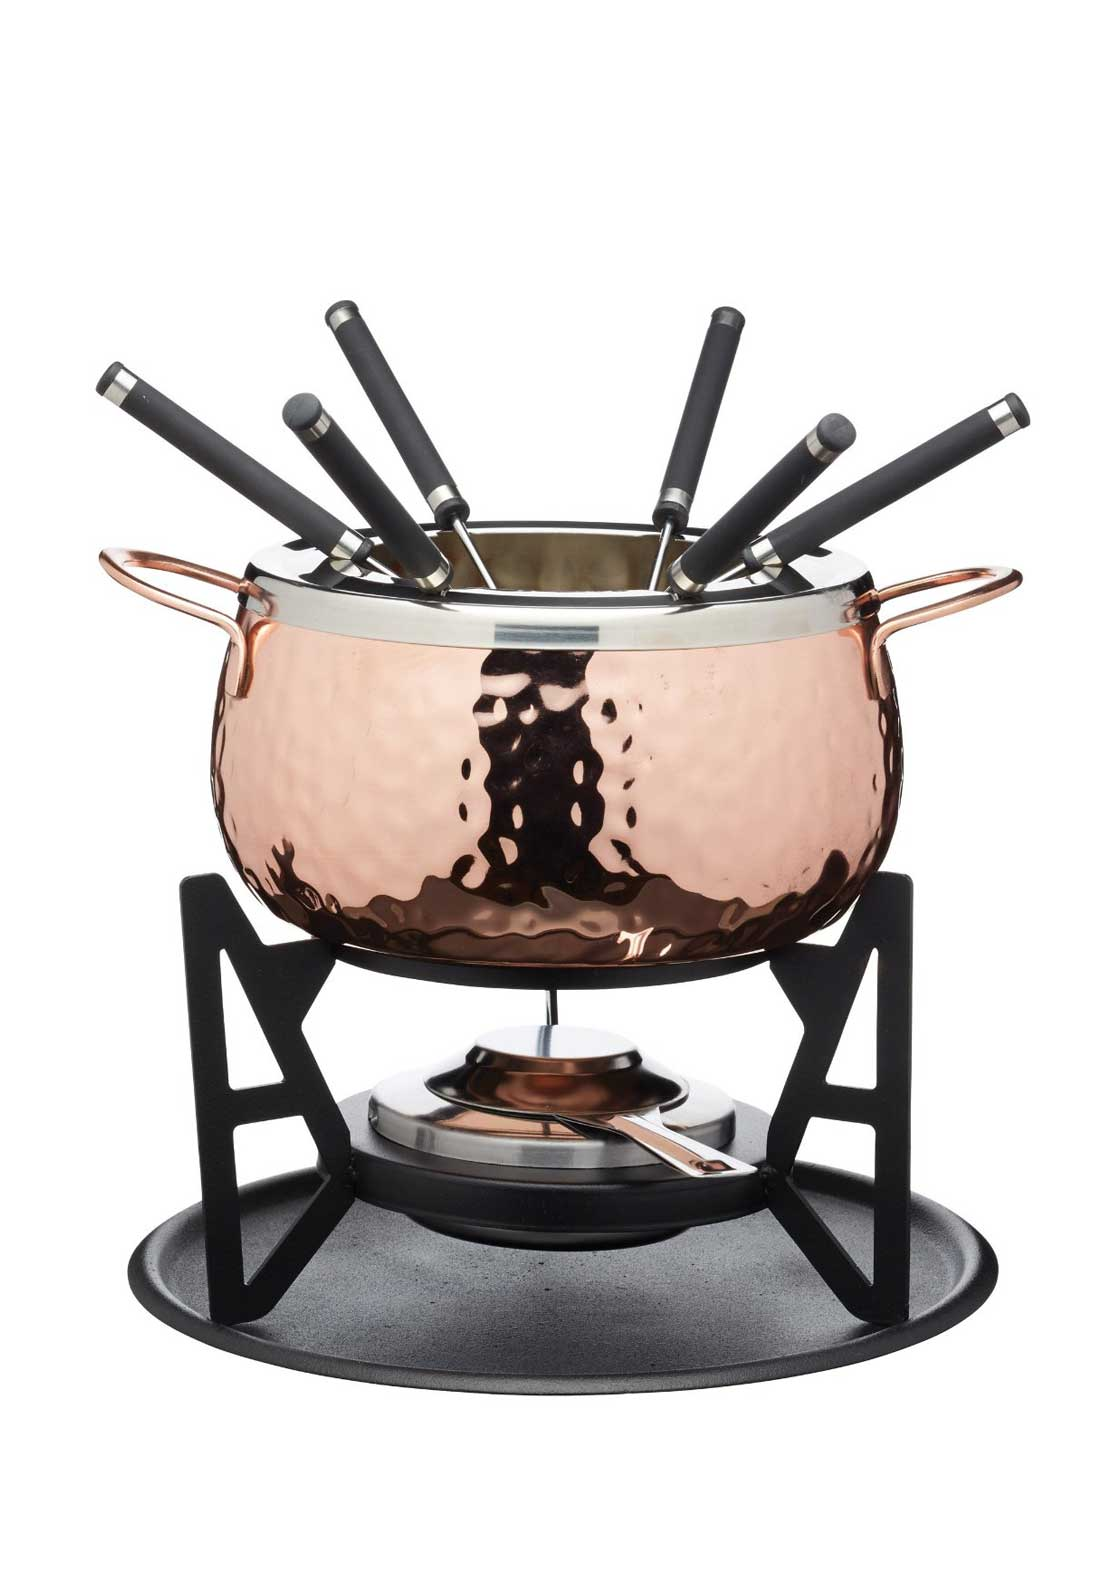 Masterclass Hammered Copper Fondue Set